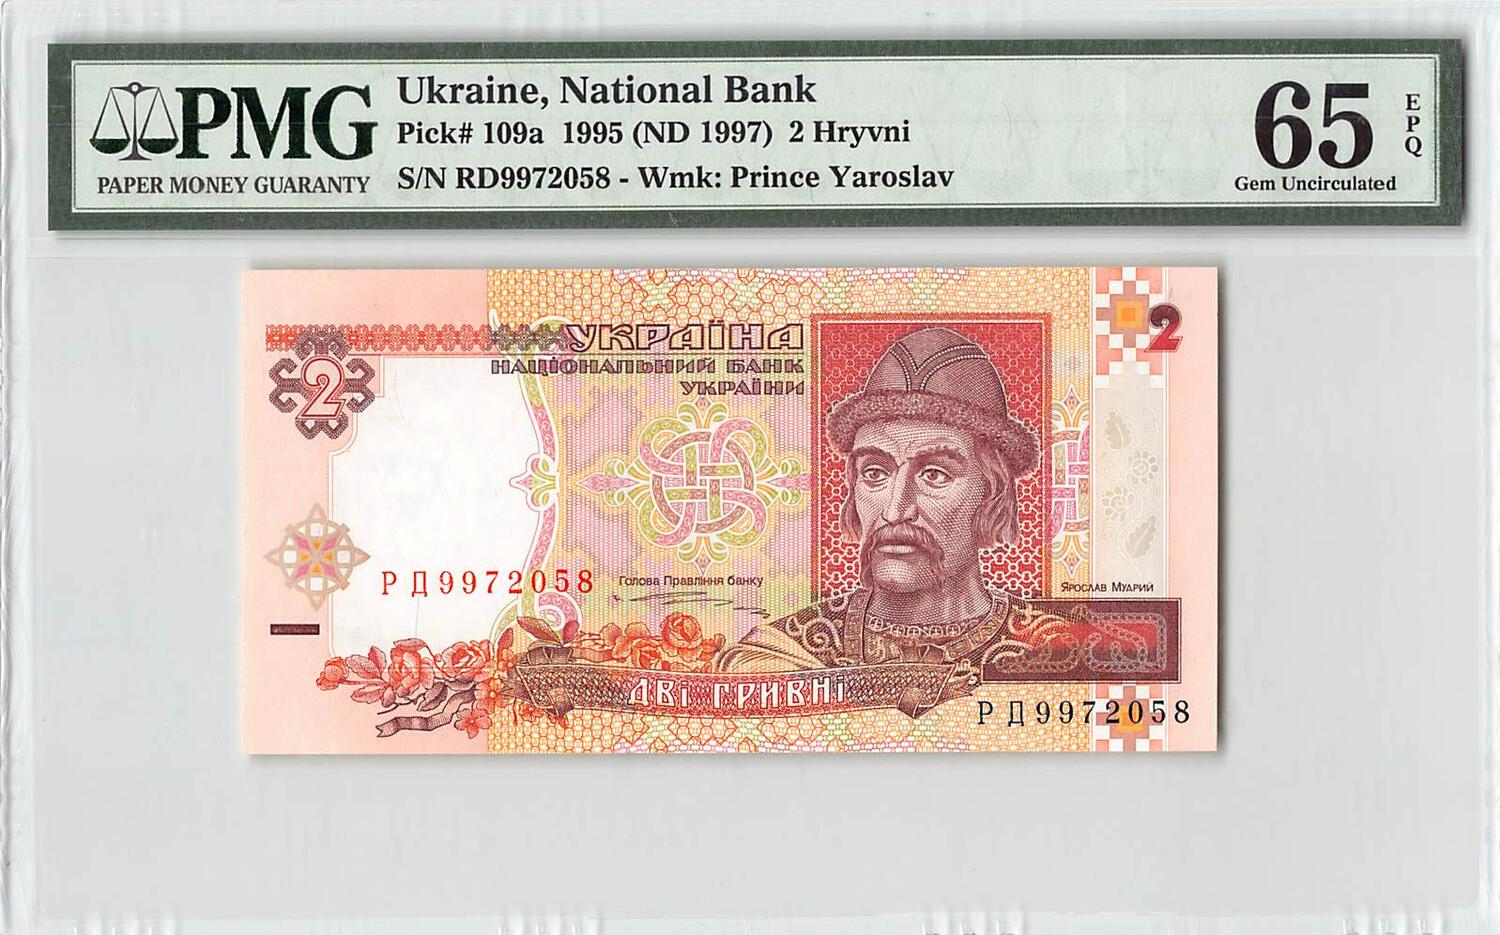 Lot of 5 Bank Notes from Ukraine 2 Hryvnia Uncirculated